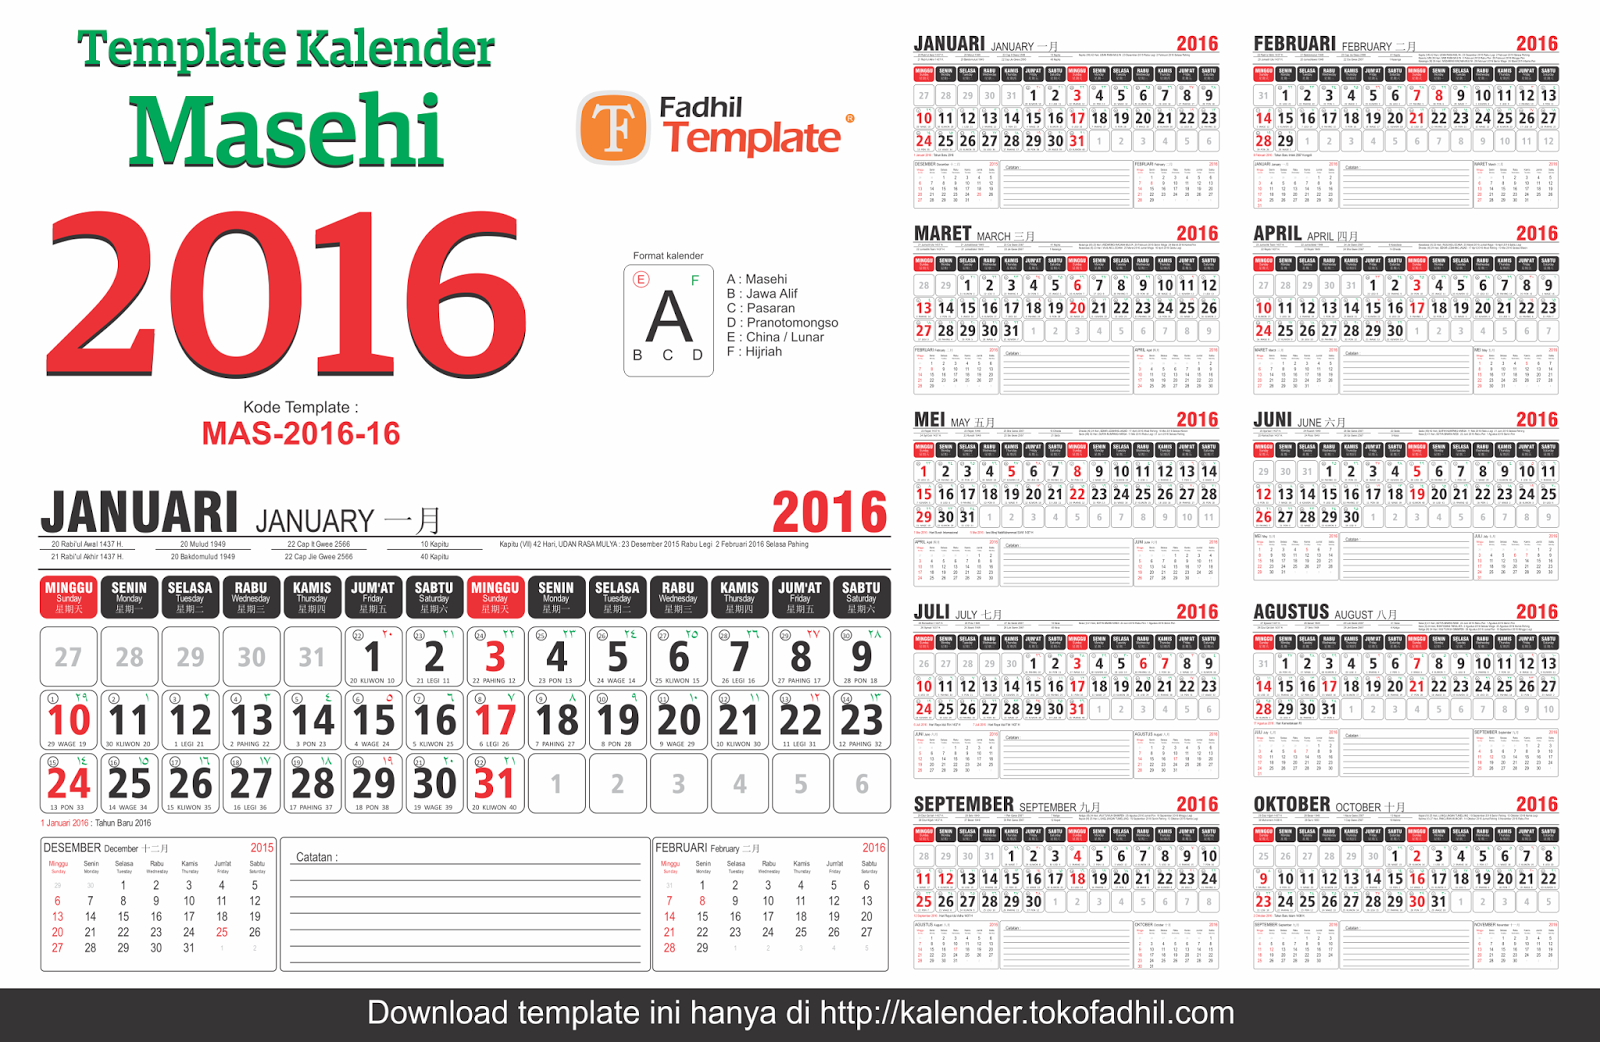 kalender 2016 indonesia cdr search results calendar 2015. Black Bedroom Furniture Sets. Home Design Ideas